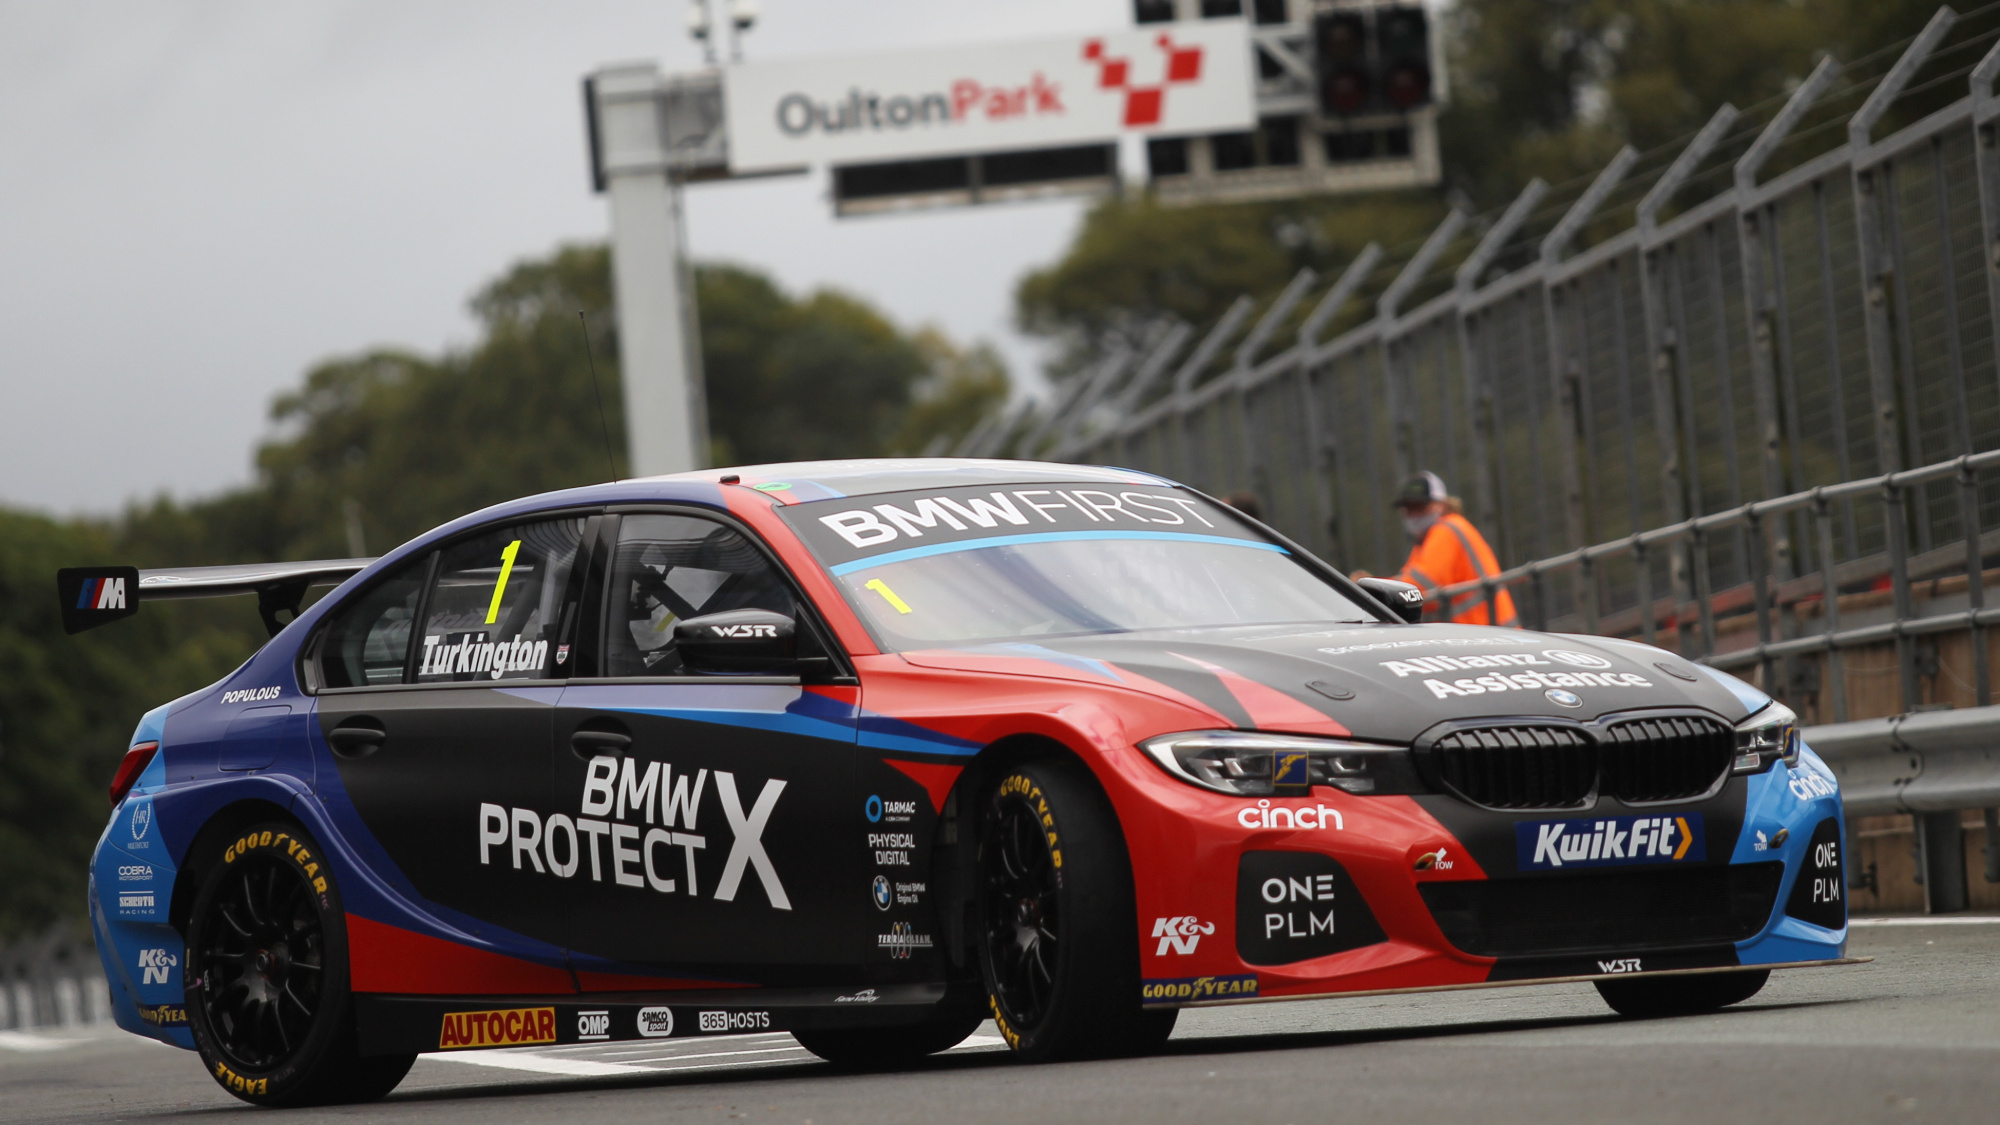 Turkington avoids the slip-ups at Oulton Park: 2020 BTCC rounds 7-9